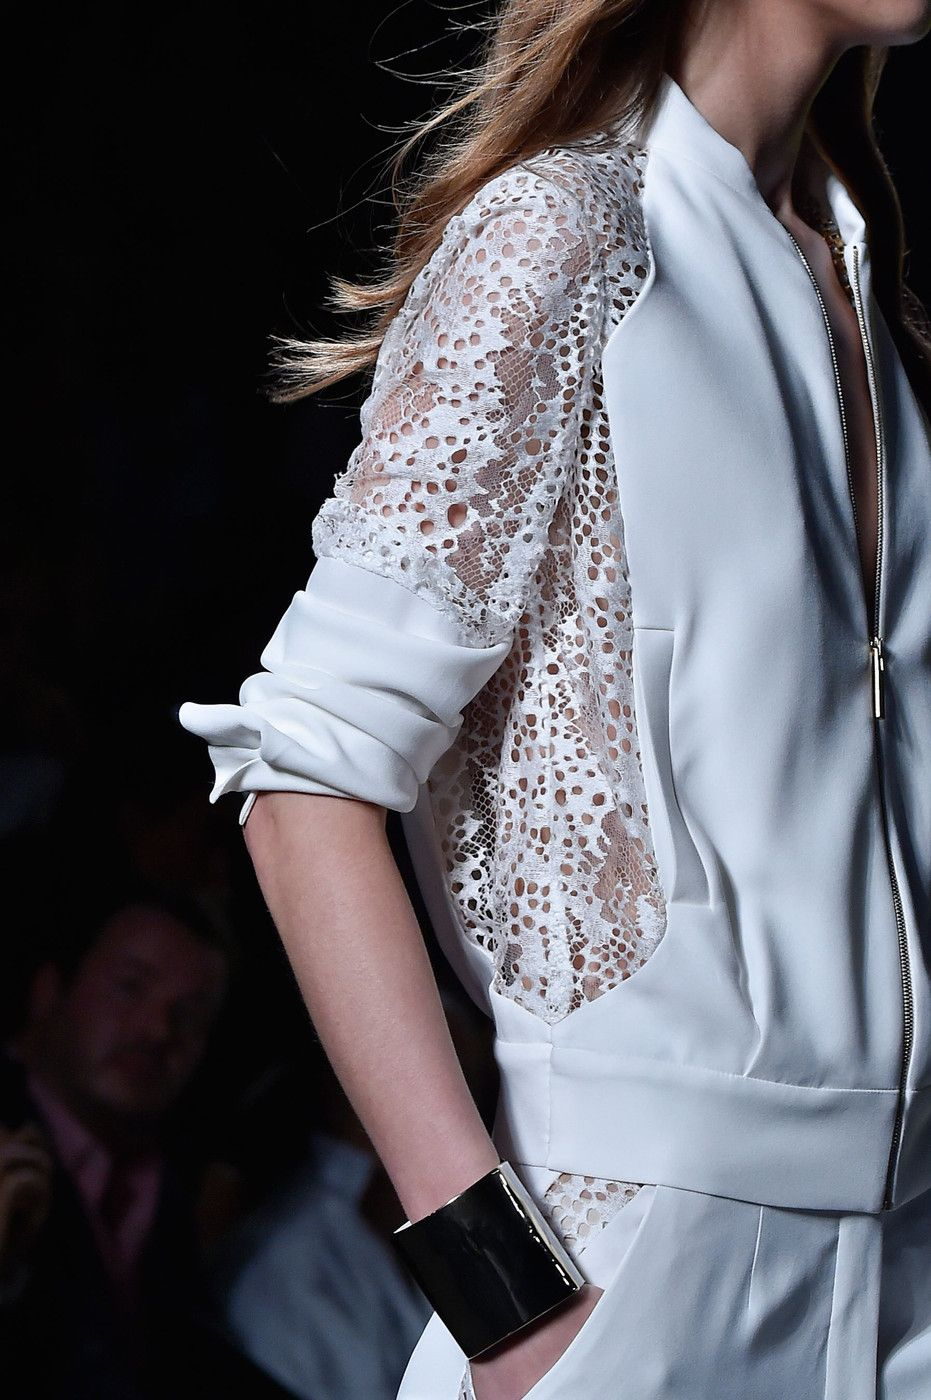 Elie Saab at Paris Fashion Week Spring 2015 #runwaydetails